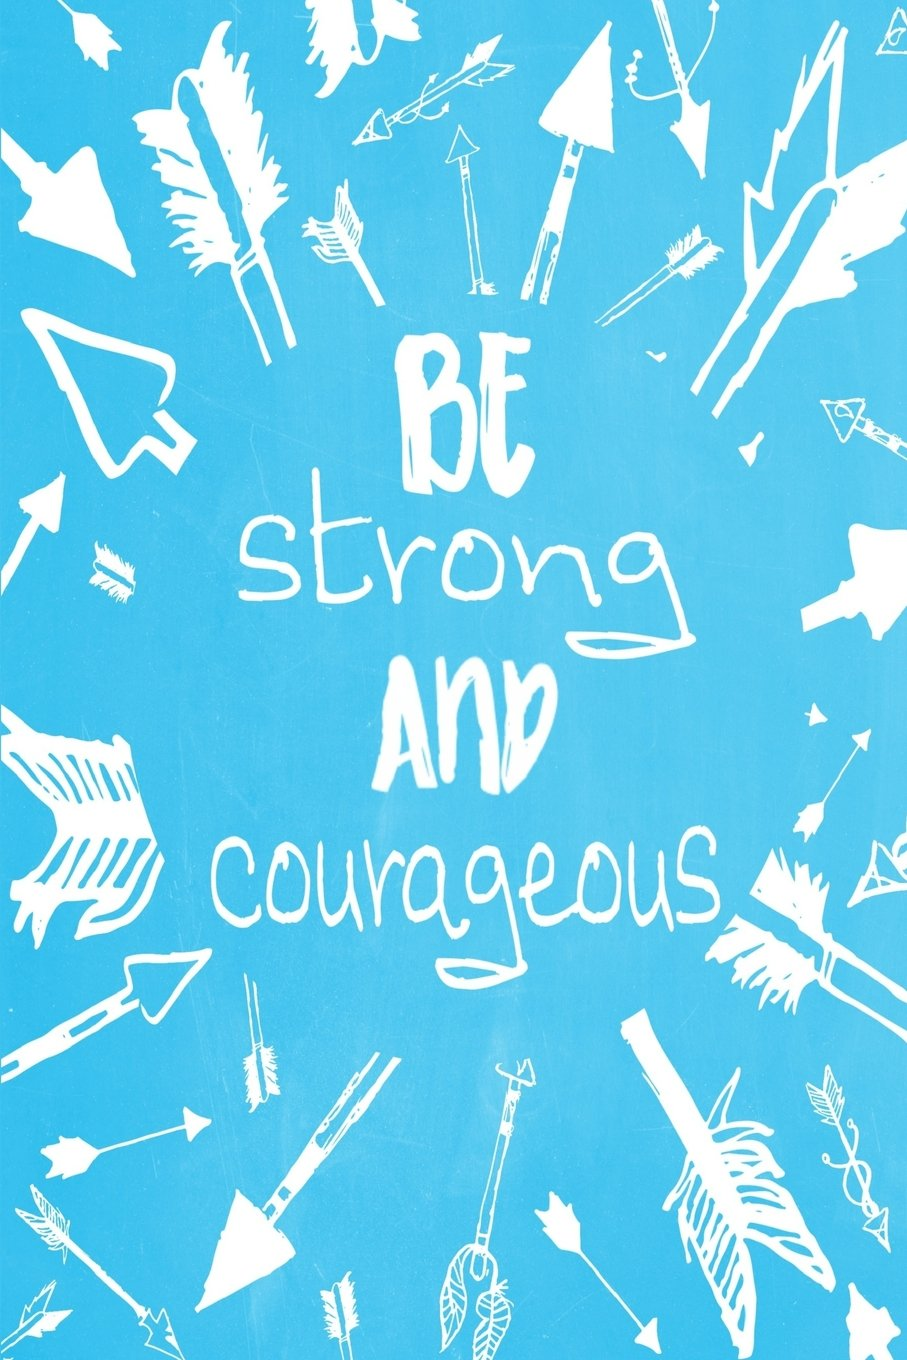 """Download Pastel Chalkboard Journal - Be Strong and Courageous (Light Blue): 100 page 6"""" x 9"""" Ruled Notebook: Inspirational Journal, Blank Notebook, Blank ... Strong and Courageous Journals) (Volume 5) ebook"""